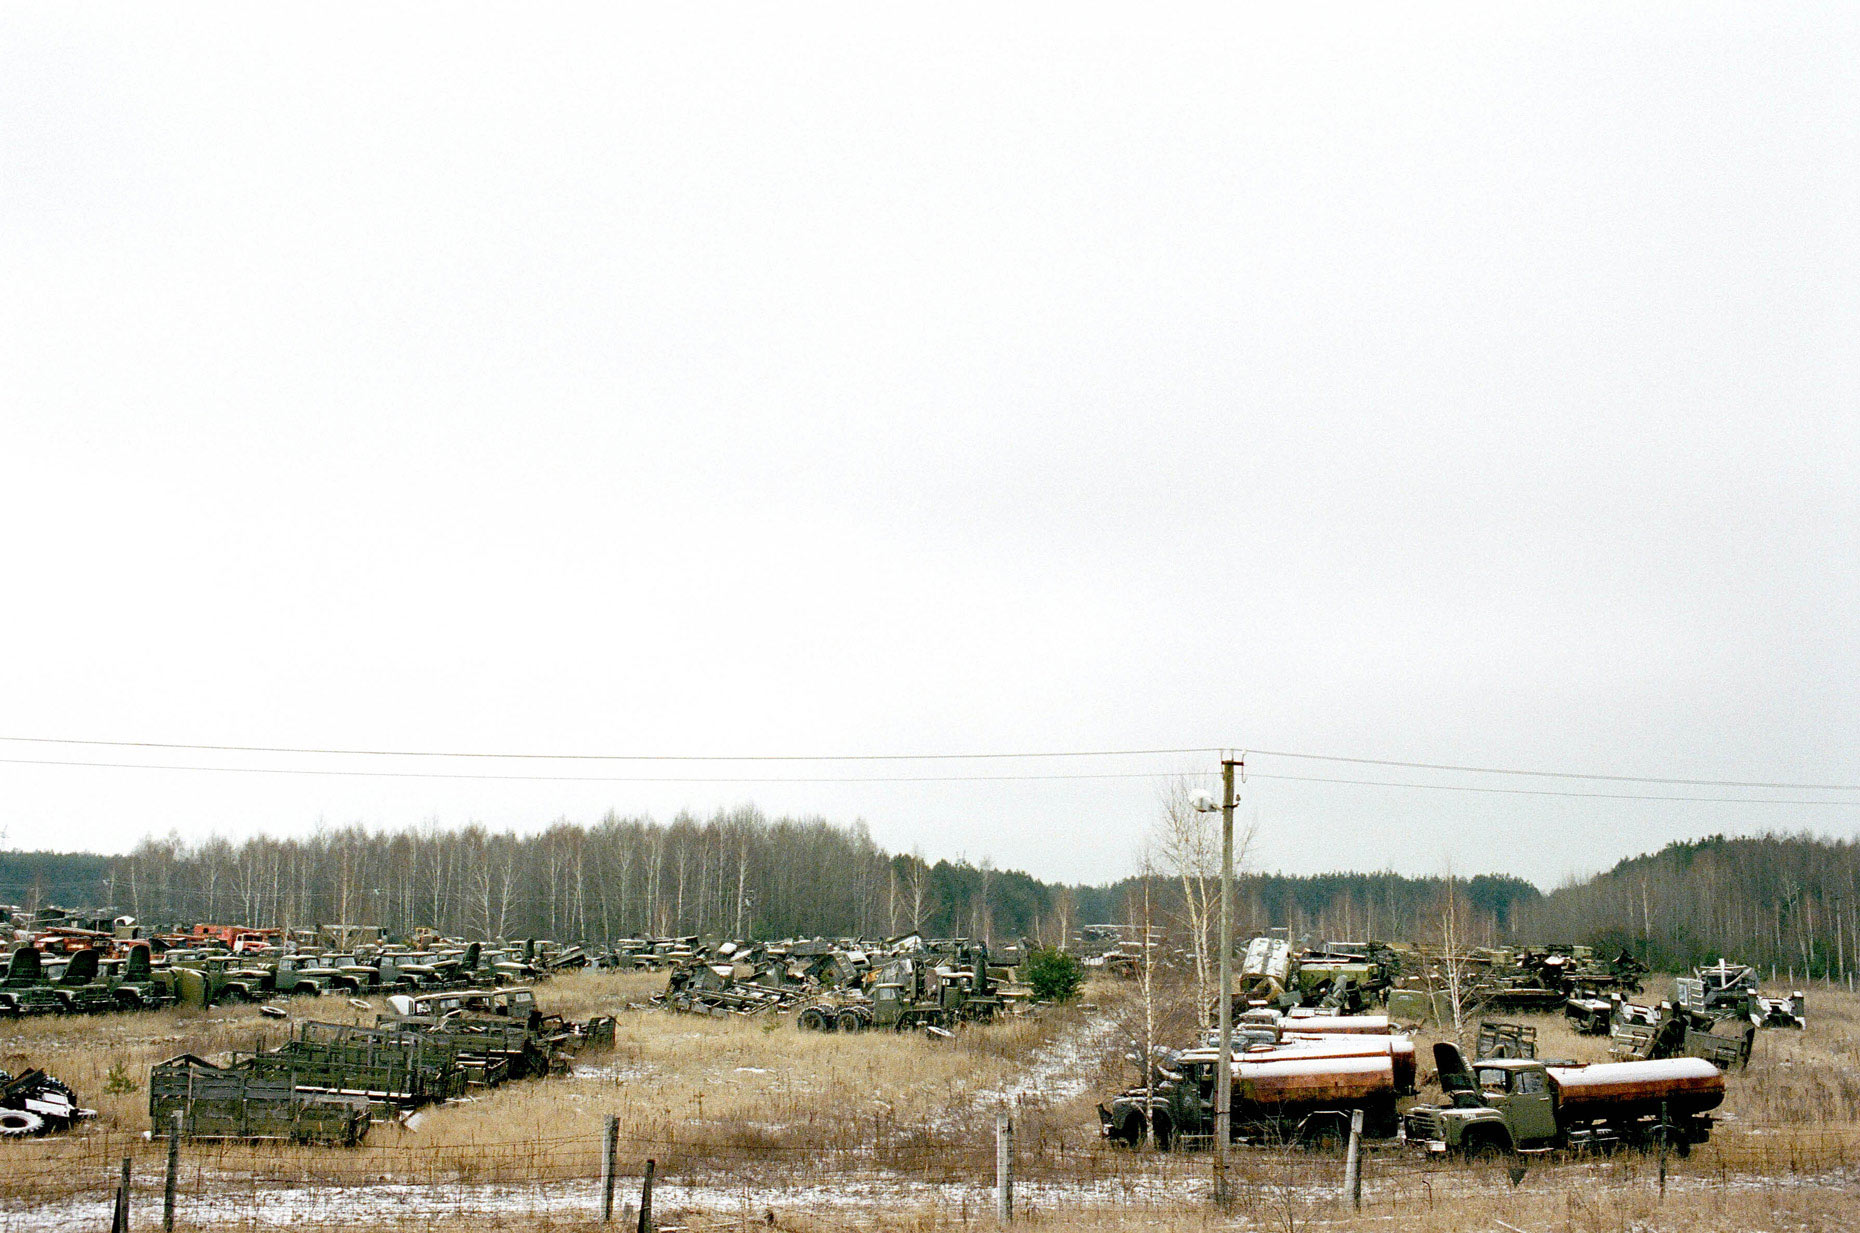 Irradiated vehicles at Rassorva, Chernobyl